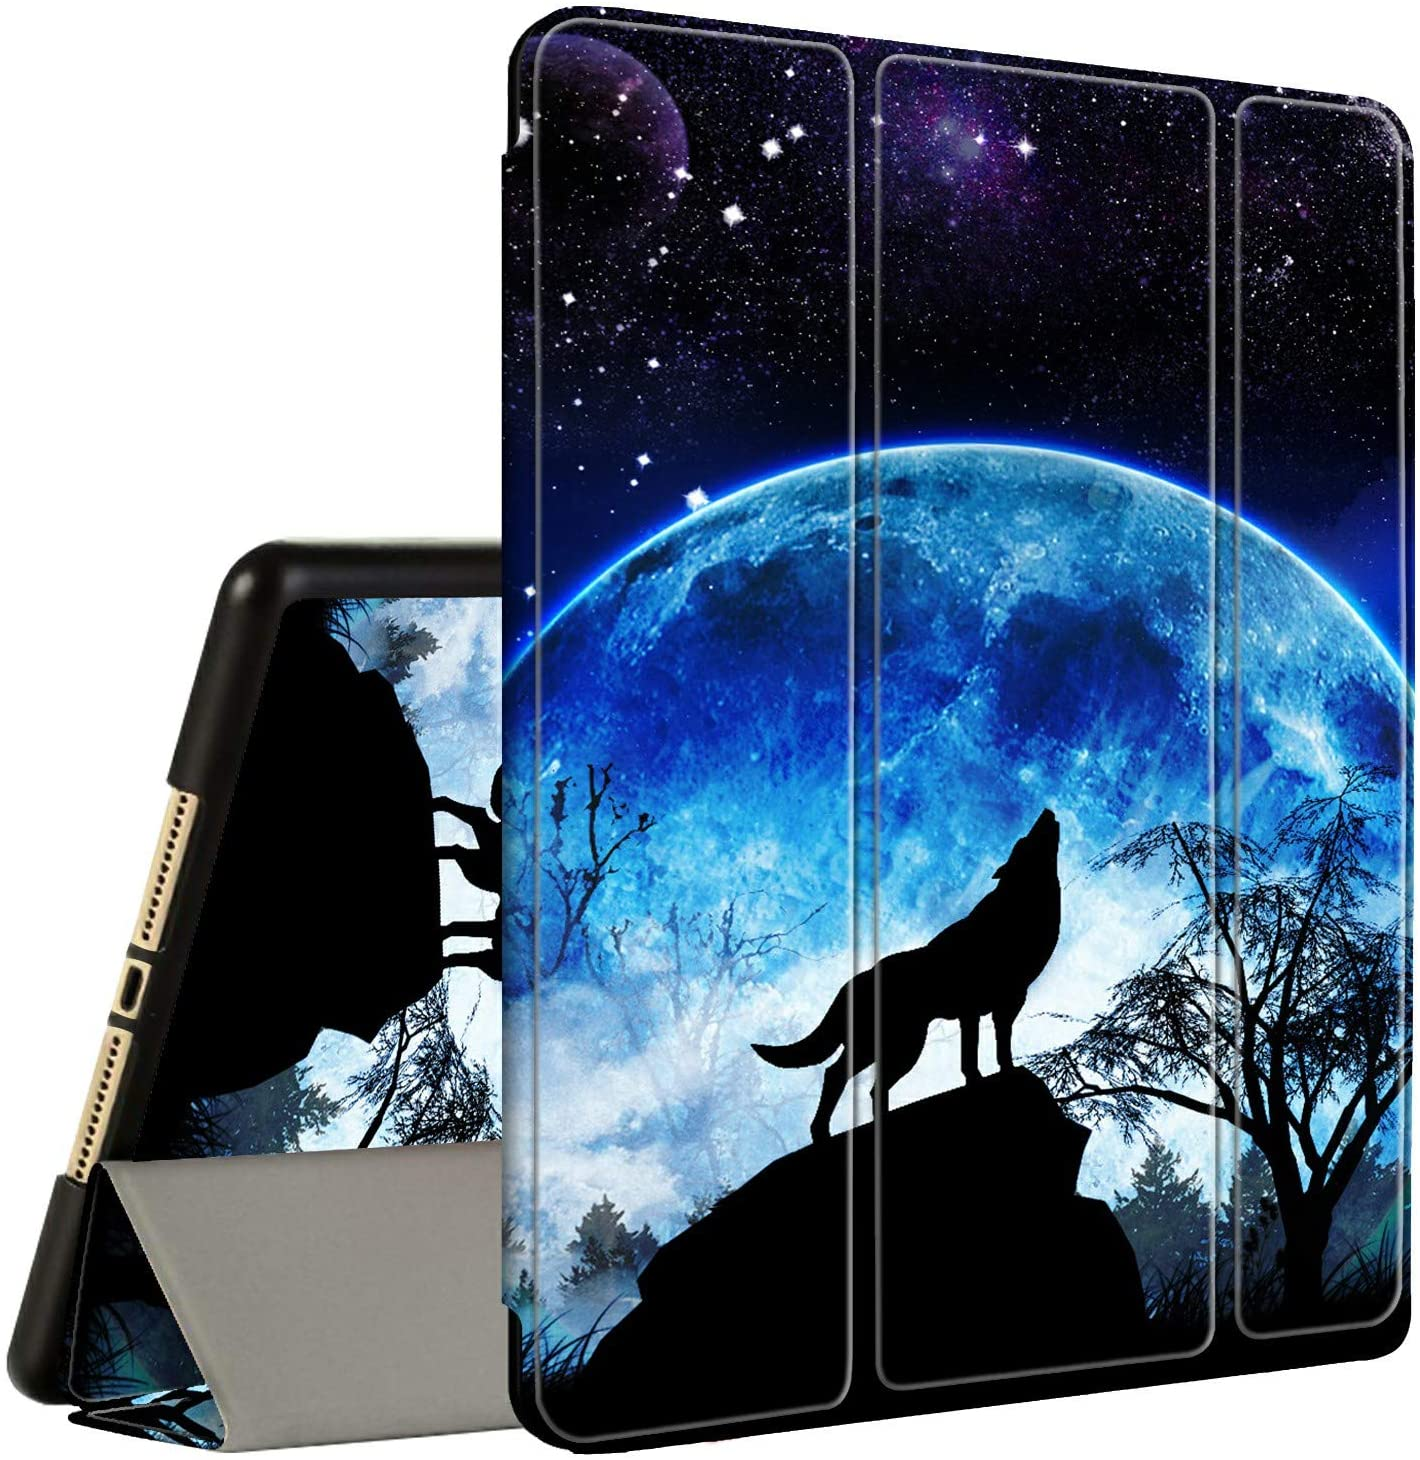 iPad 9.7 2018/2017 Case, ipad 6th/5th Generation Case with Pencil Holder, Amook Tri-Fold Smart Cover Stand Shockproof Case for 9.7 inch ipad 2017 2018 & ipad Air 1/2- Howling Wolf Full Moon